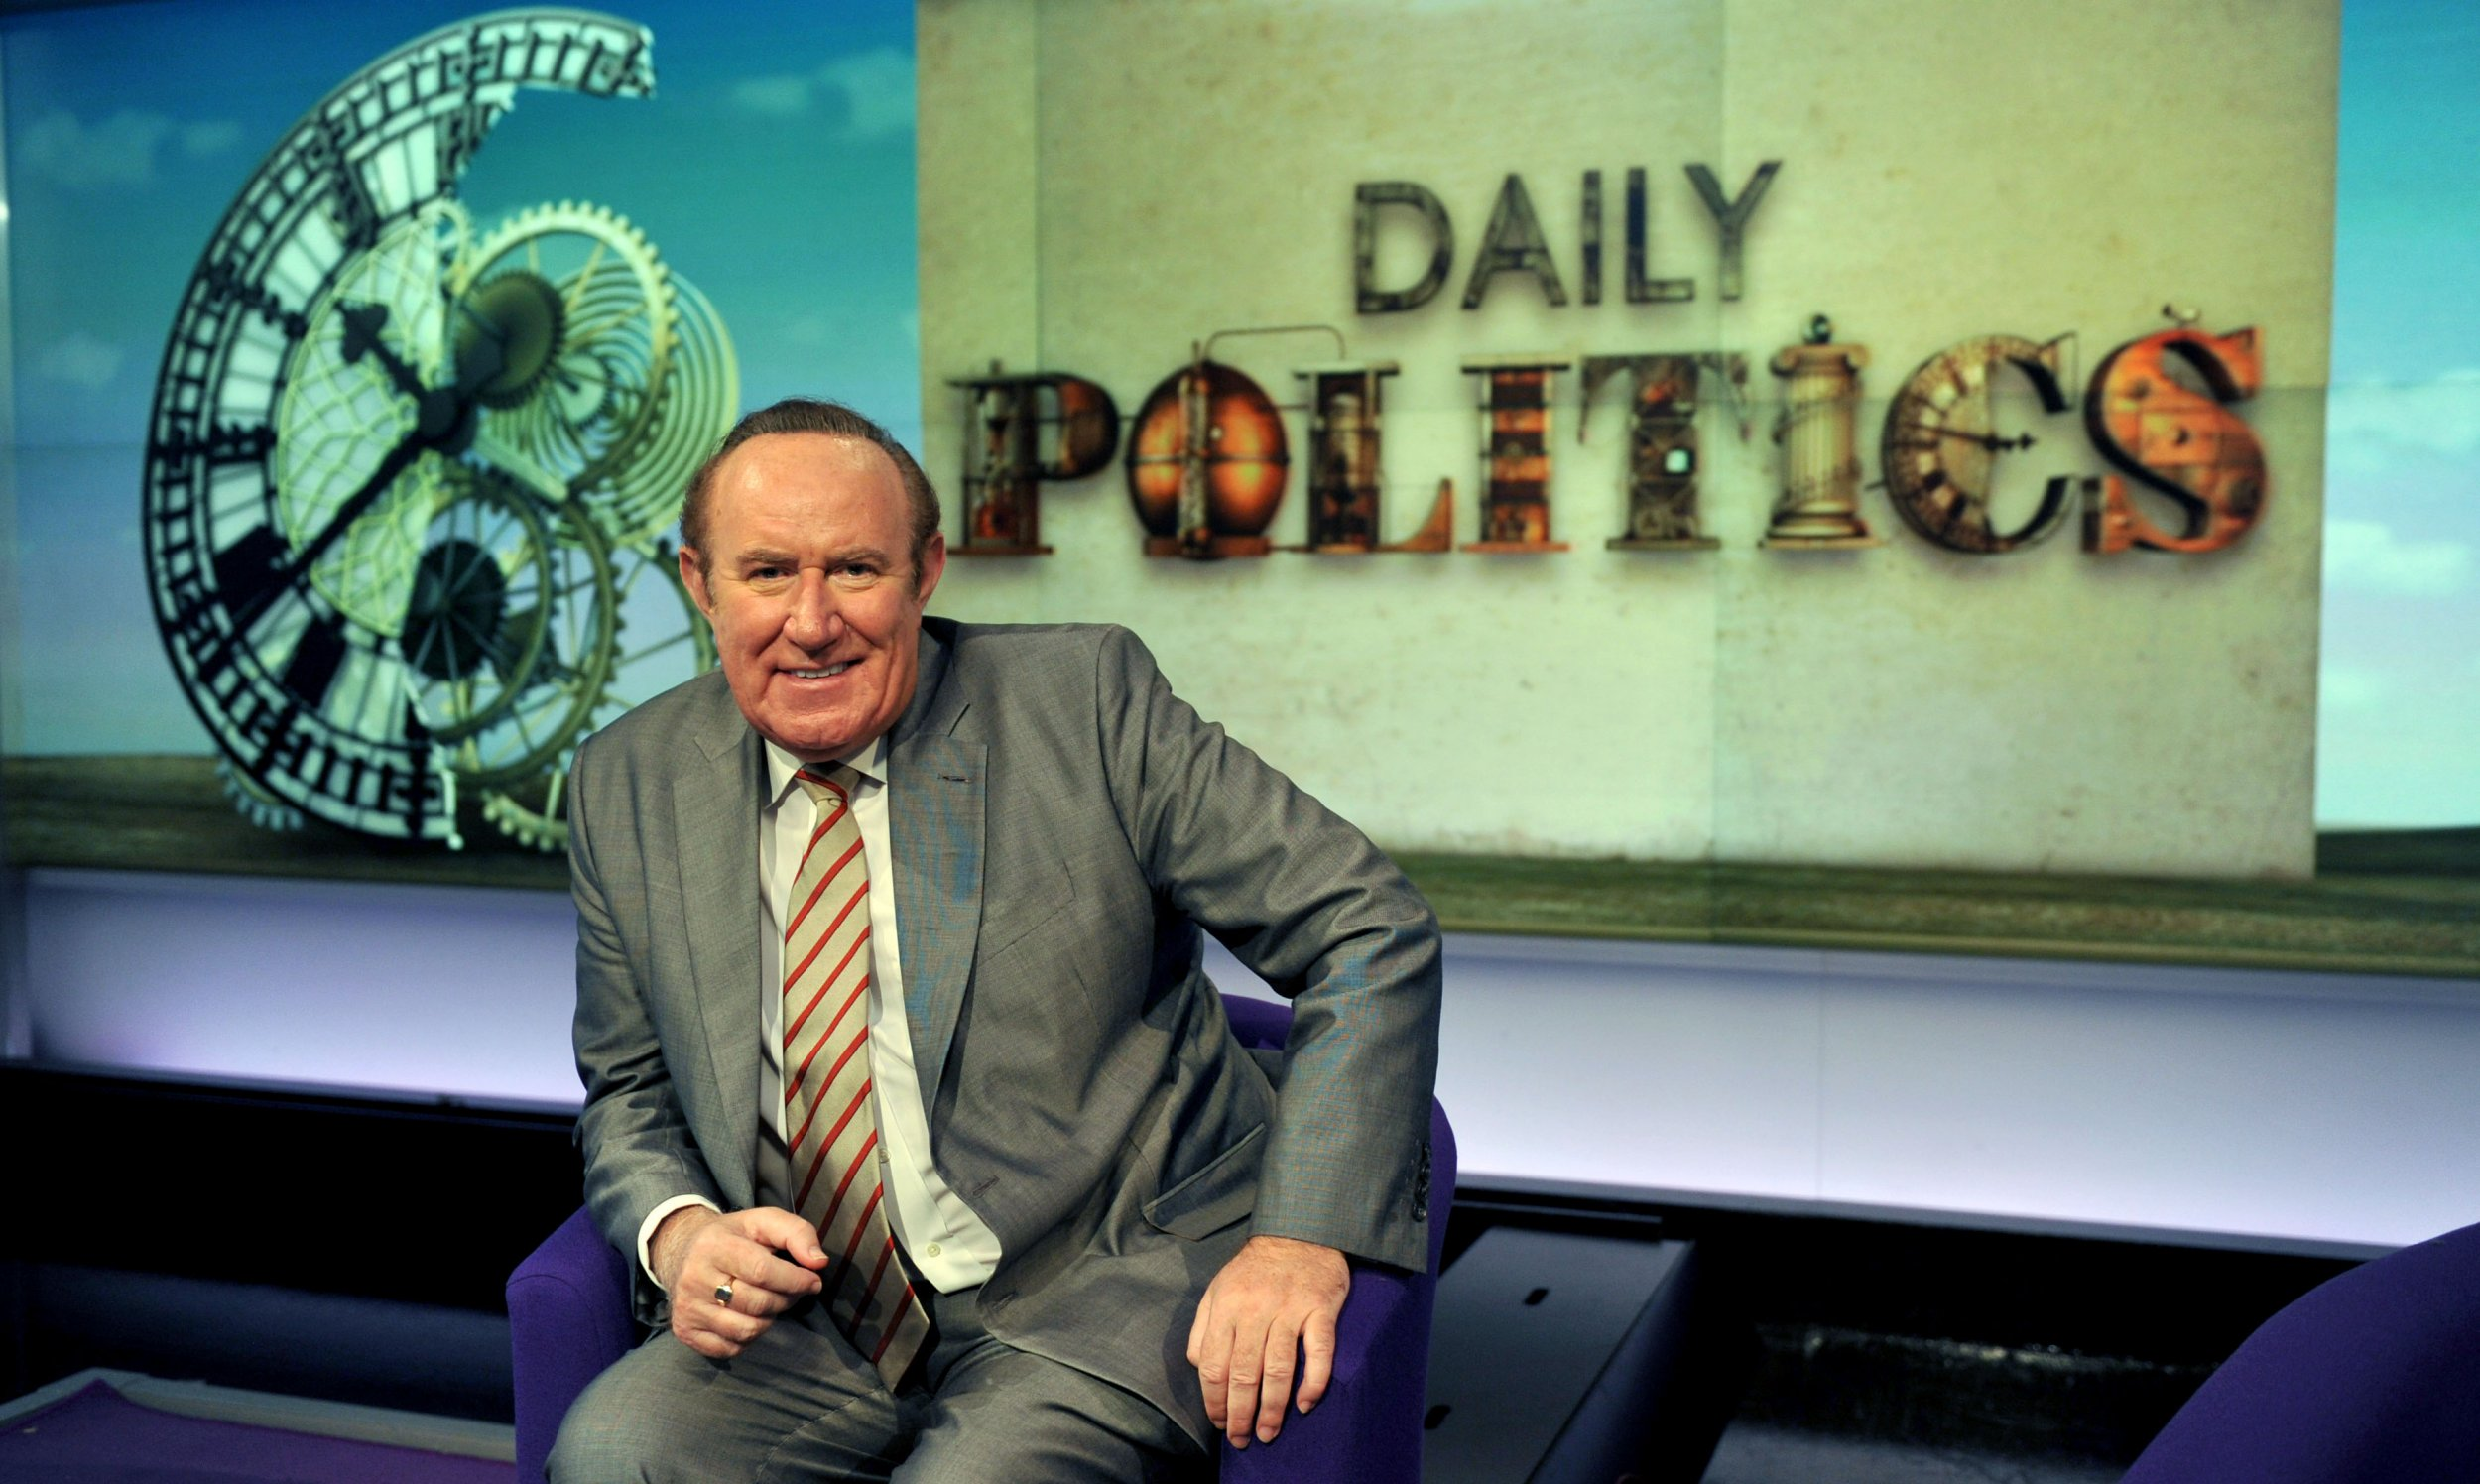 Andrew Neil on Daily Politics